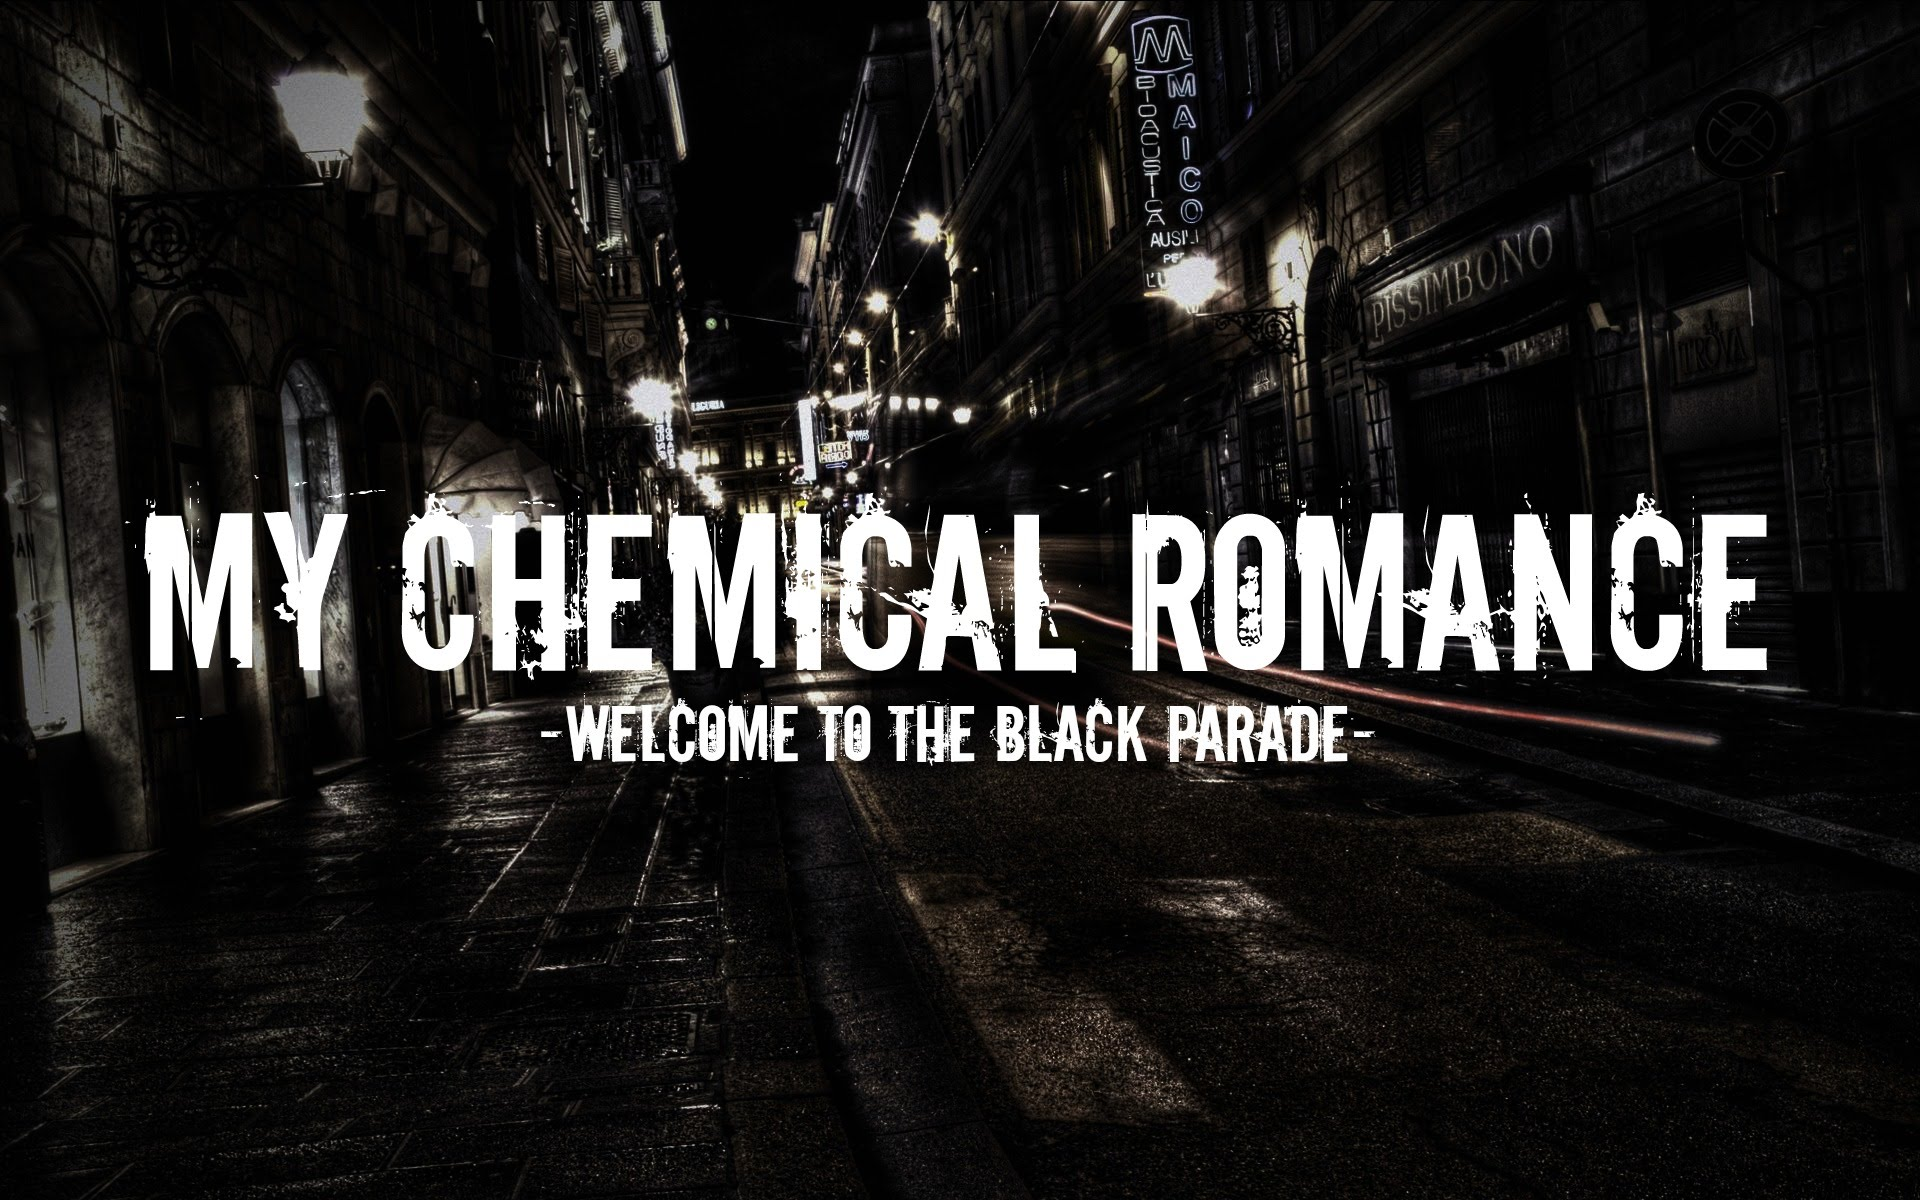 download welcome to the black parade wallpaper gallery